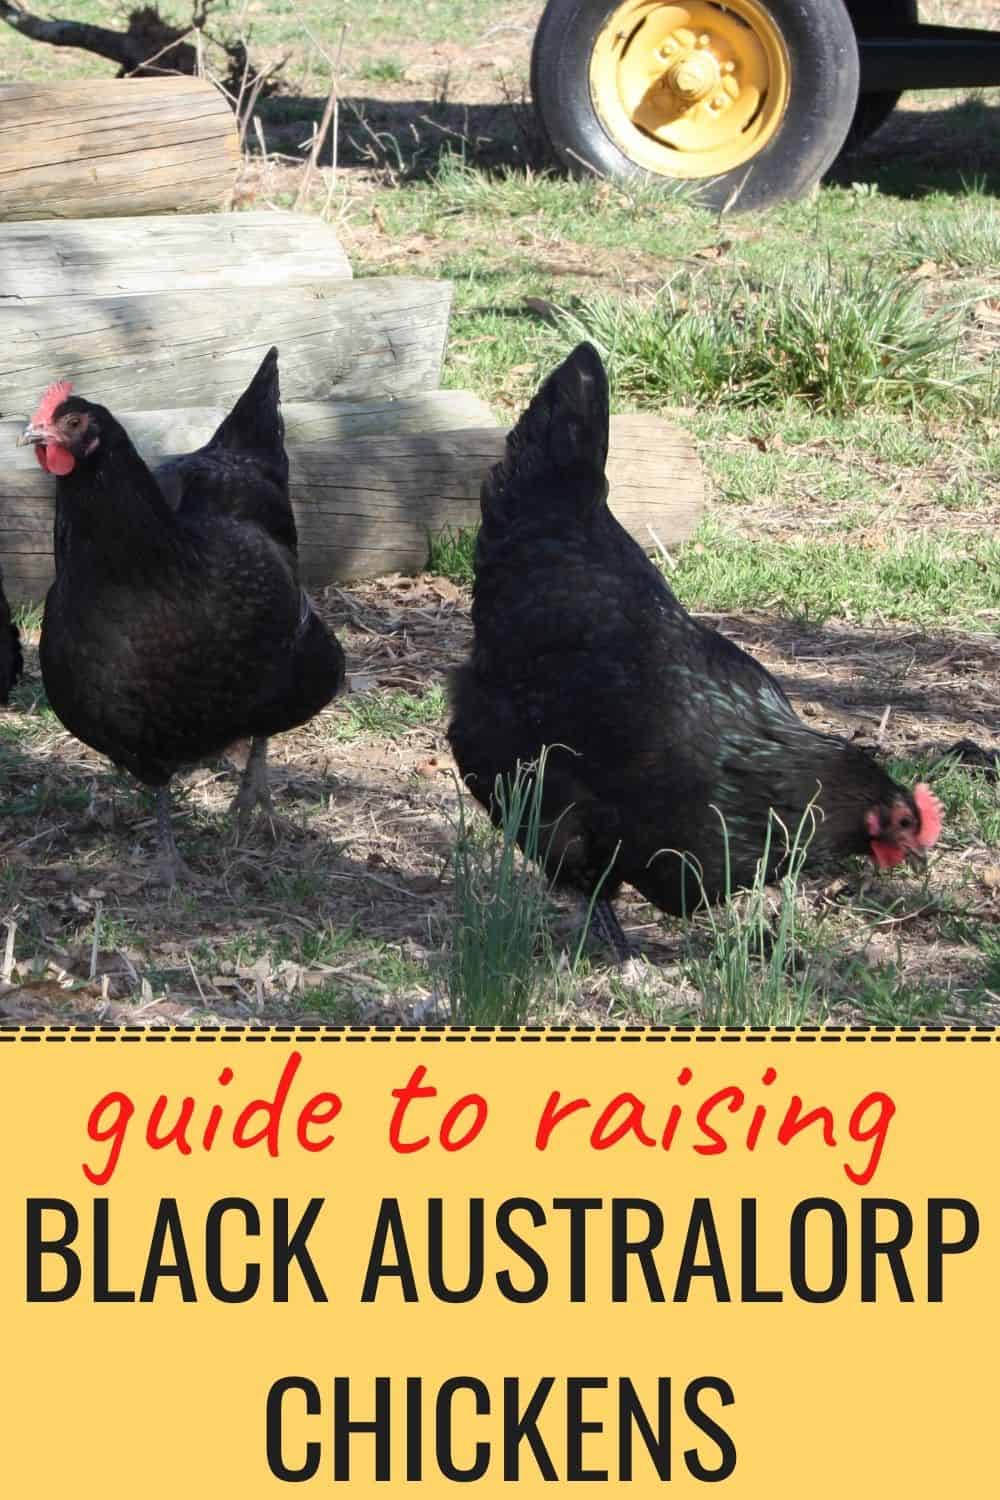 Guide to raising black Australorp chickens